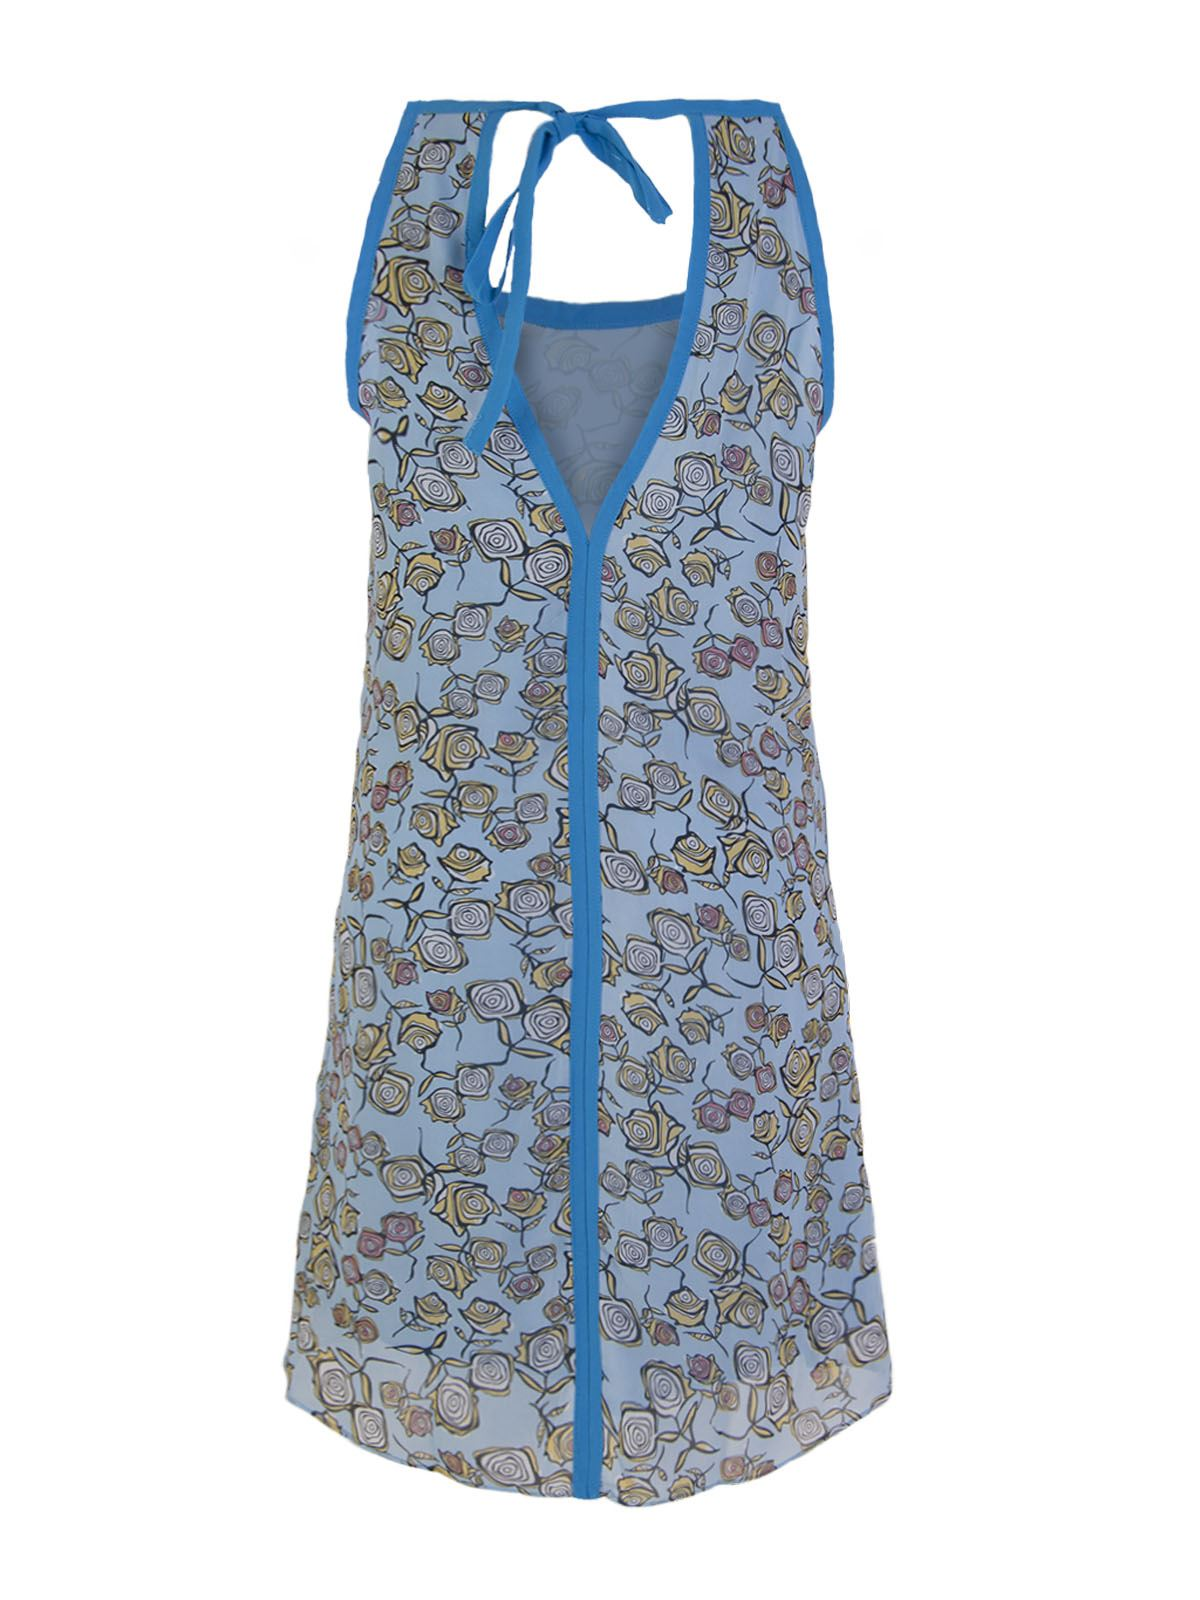 WOMENS-NEW-LADIES-CHIFFON-BEACH-PARTY-SUMMER-DRESS-LEOPARD-FLORAL-VEST-TOP-8-14